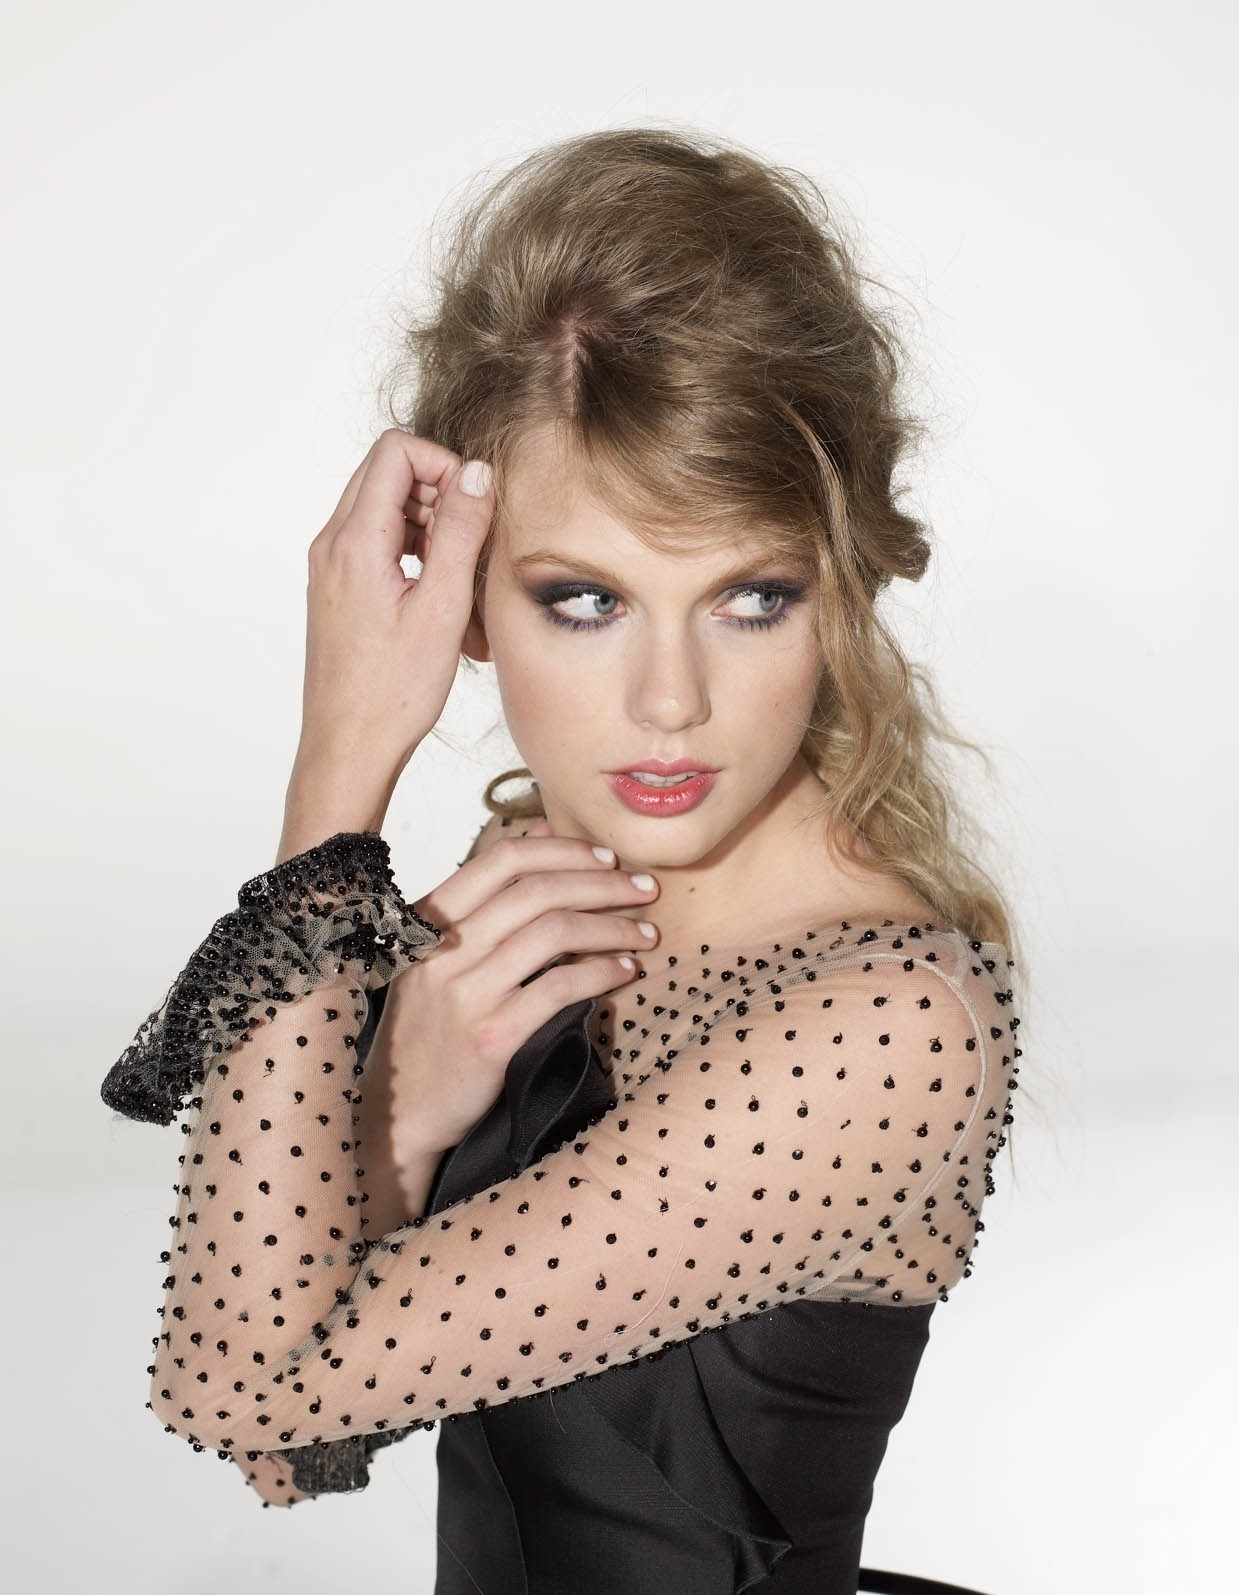 http://1.bp.blogspot.com/-NWaQSq8w0DM/Tl9VheESz4I/AAAAAAAAAaM/2hKLTJDY6OY/s1600/Taylor-Swift-songs-about-lyrics-love-story-hairstyle+%25285%2529.jpg